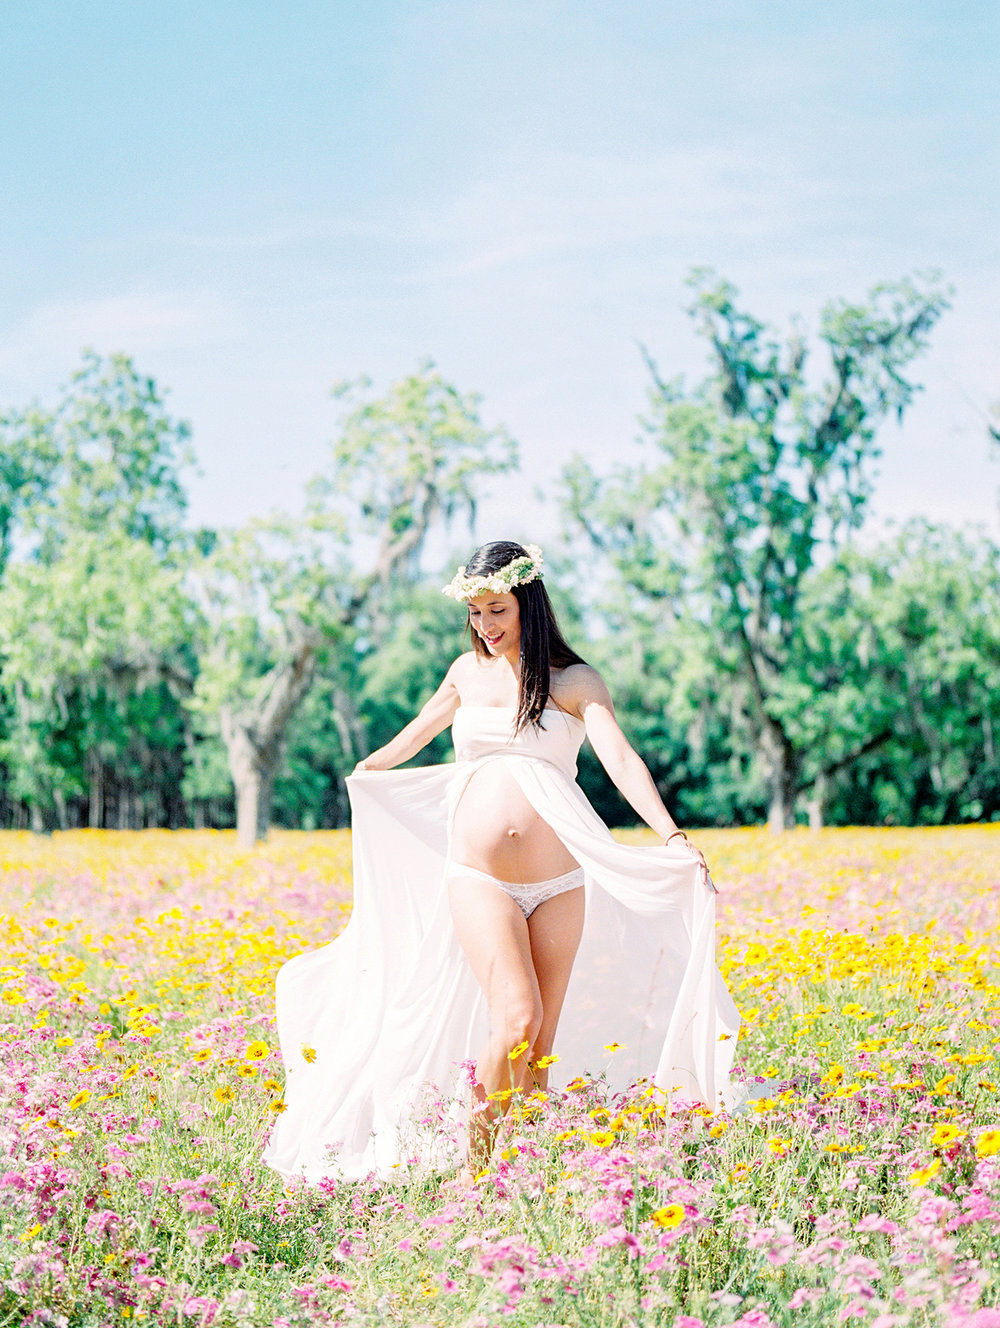 Family Maternity Session in a Flower Field- Lisa Silva Photography- Jacksonville and St. Augustine Florida Fine Art Film Photography- 0.jpg